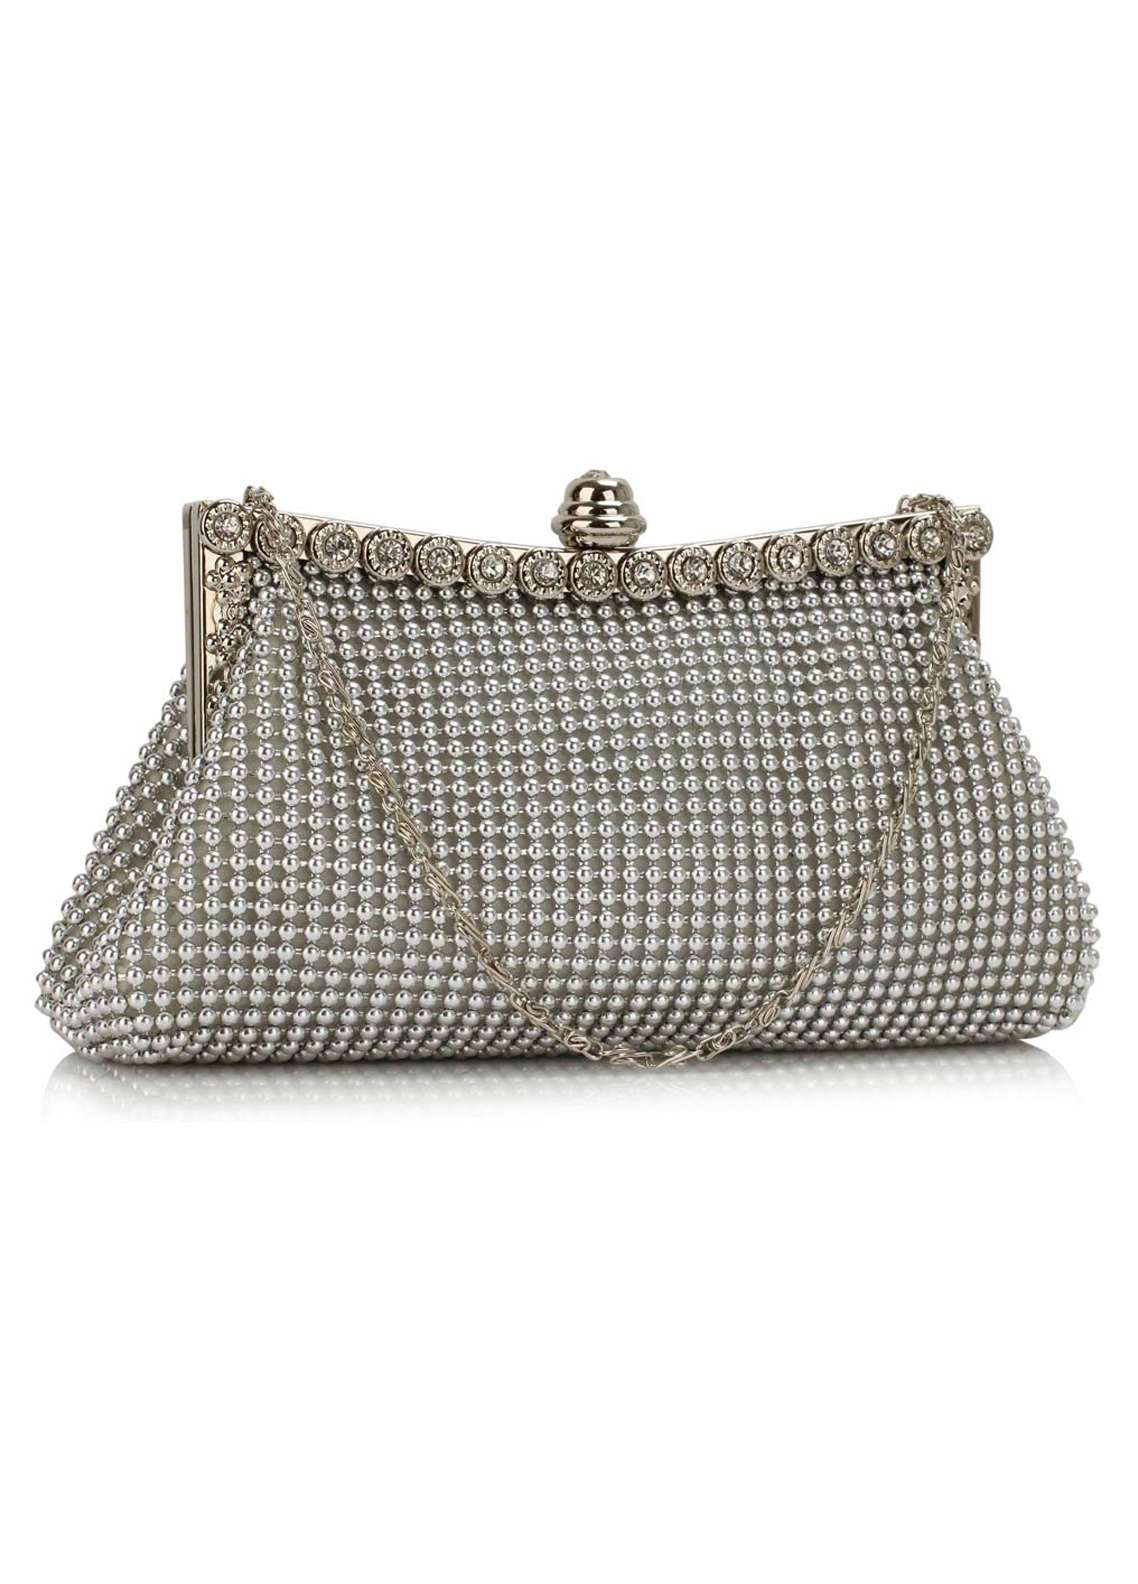 Leesun London  Crystal Clutch Bags  for Women  Silver with Sparkly Crystal